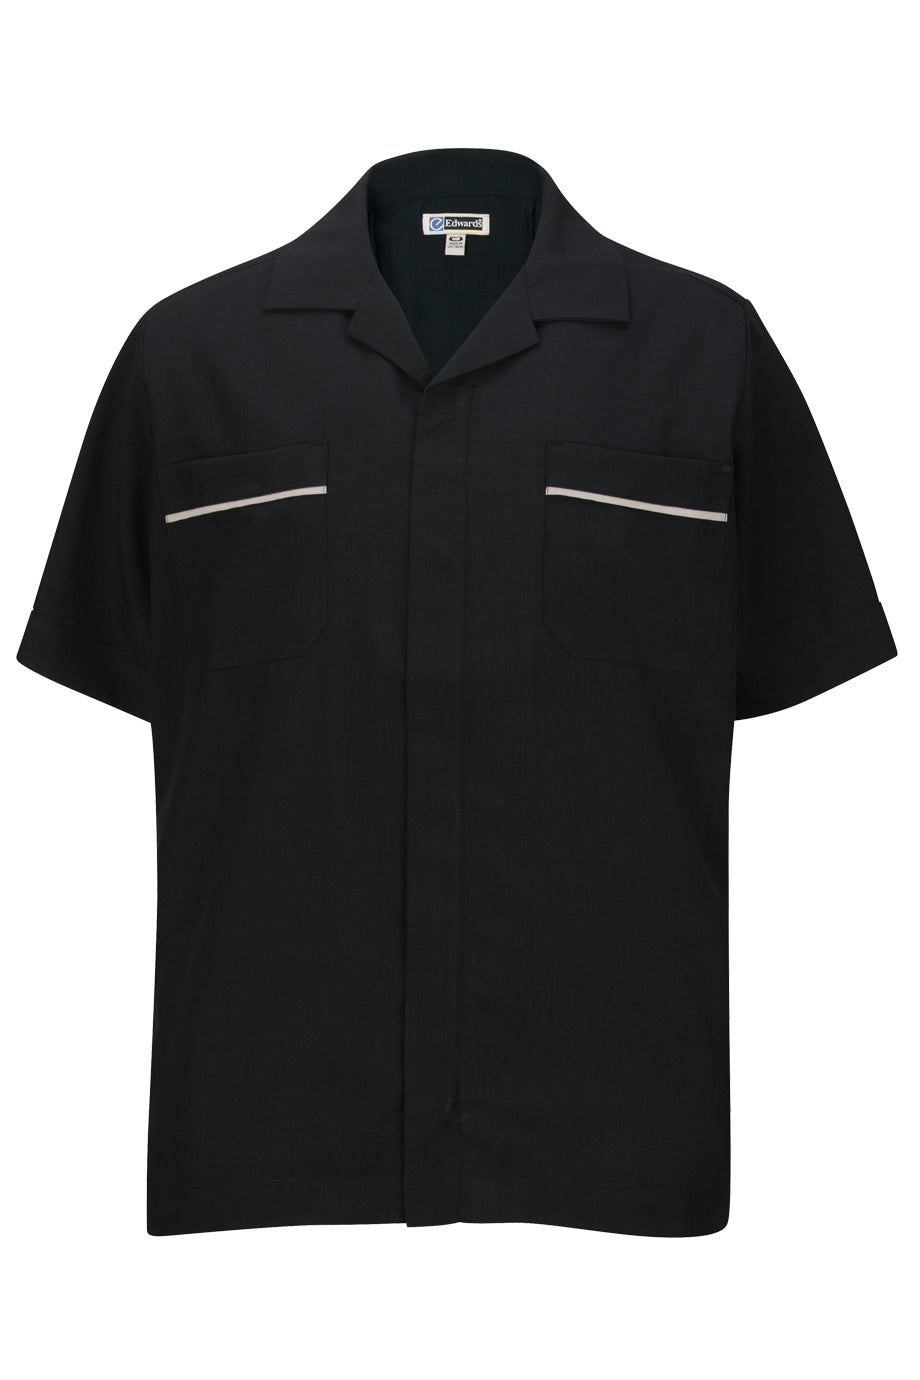 Men's Pinnacle Service Shirt